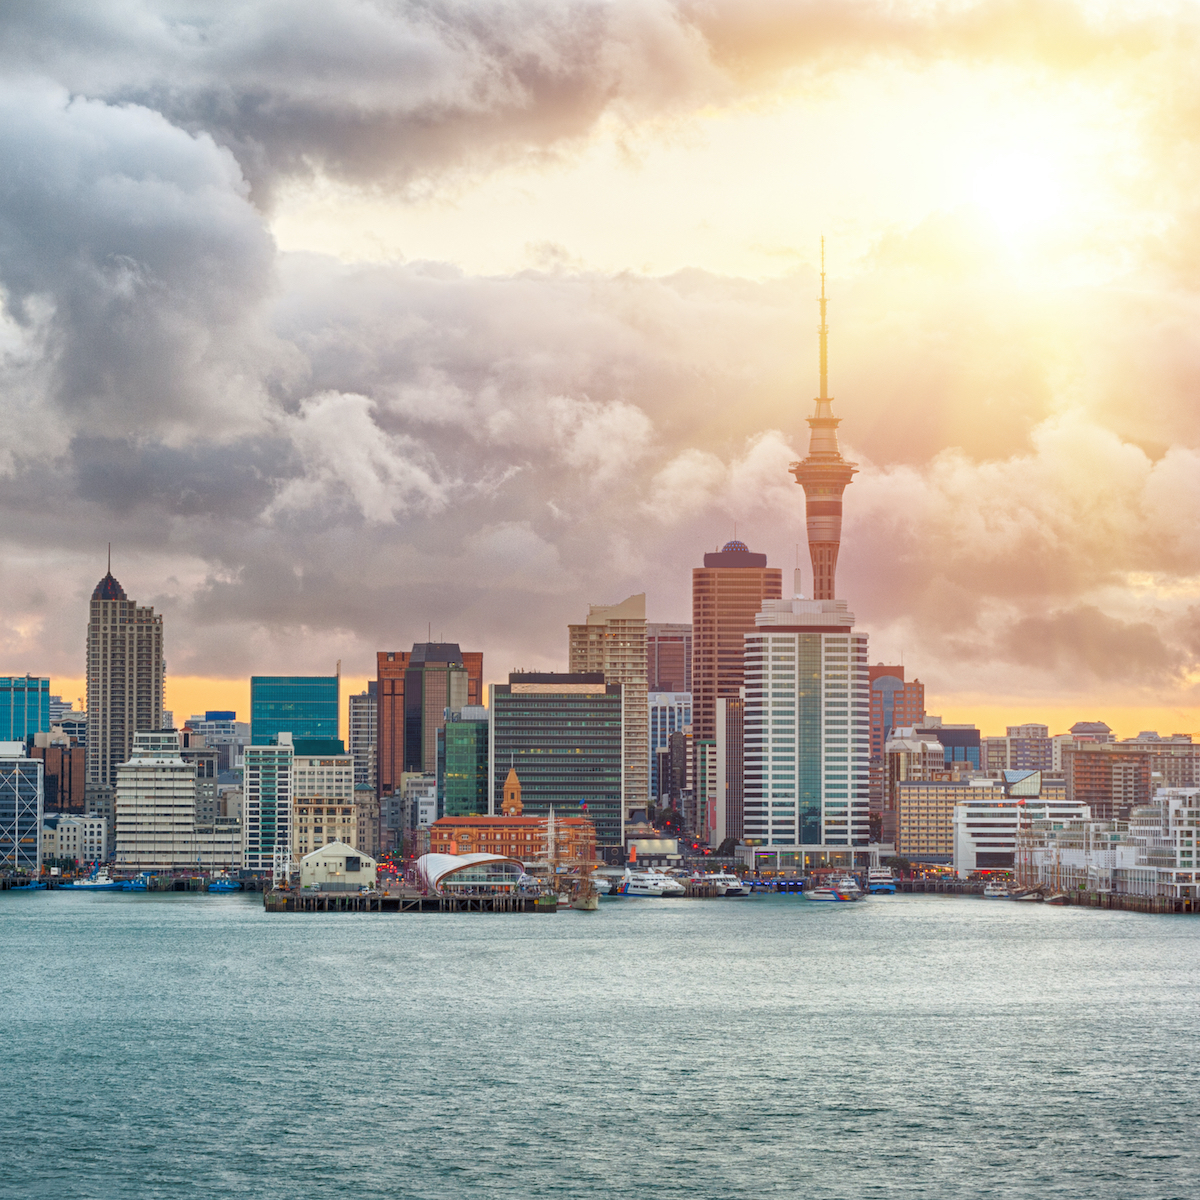 Sunset in Auckland, New Zealand.